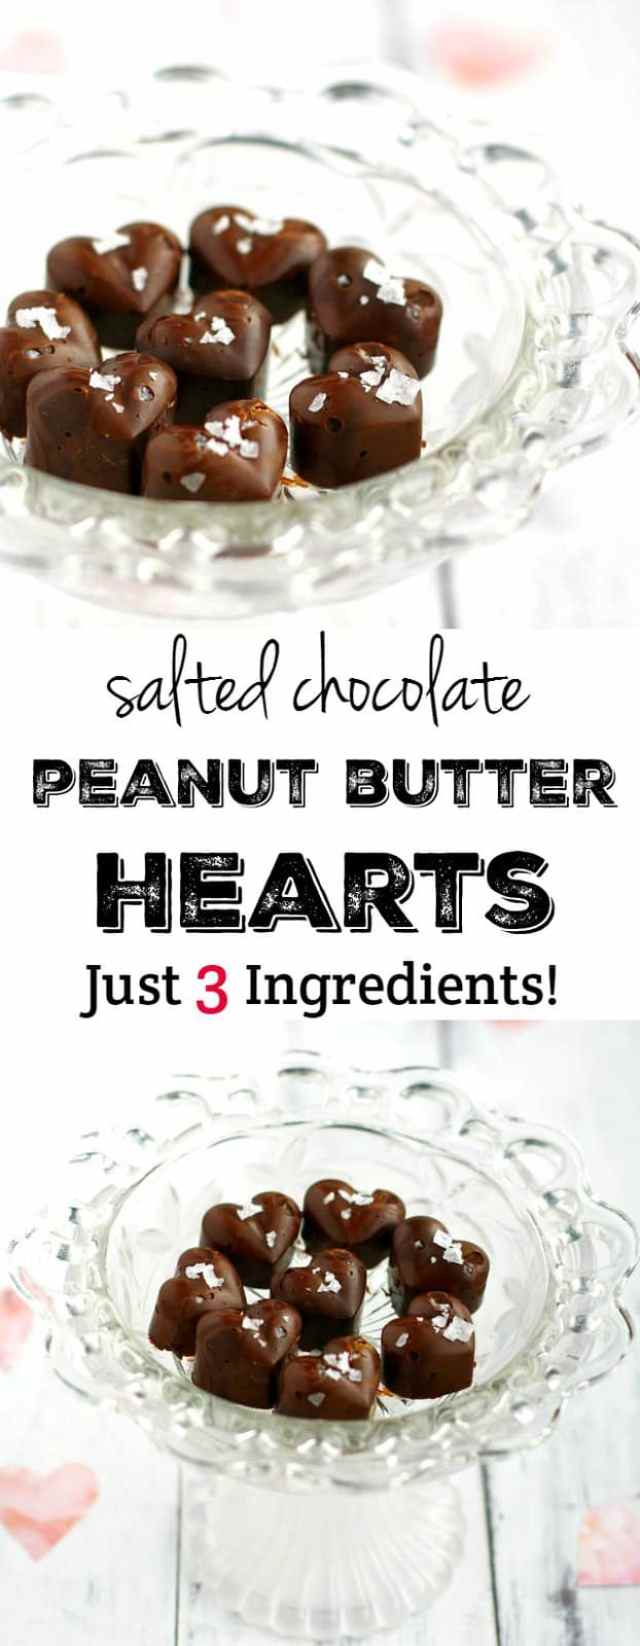 These salted chocolate peanut butter hearts couldn't be any easier or any tastier! Just 3 ingredients, and you'll have a batch of these for Valentine's day!